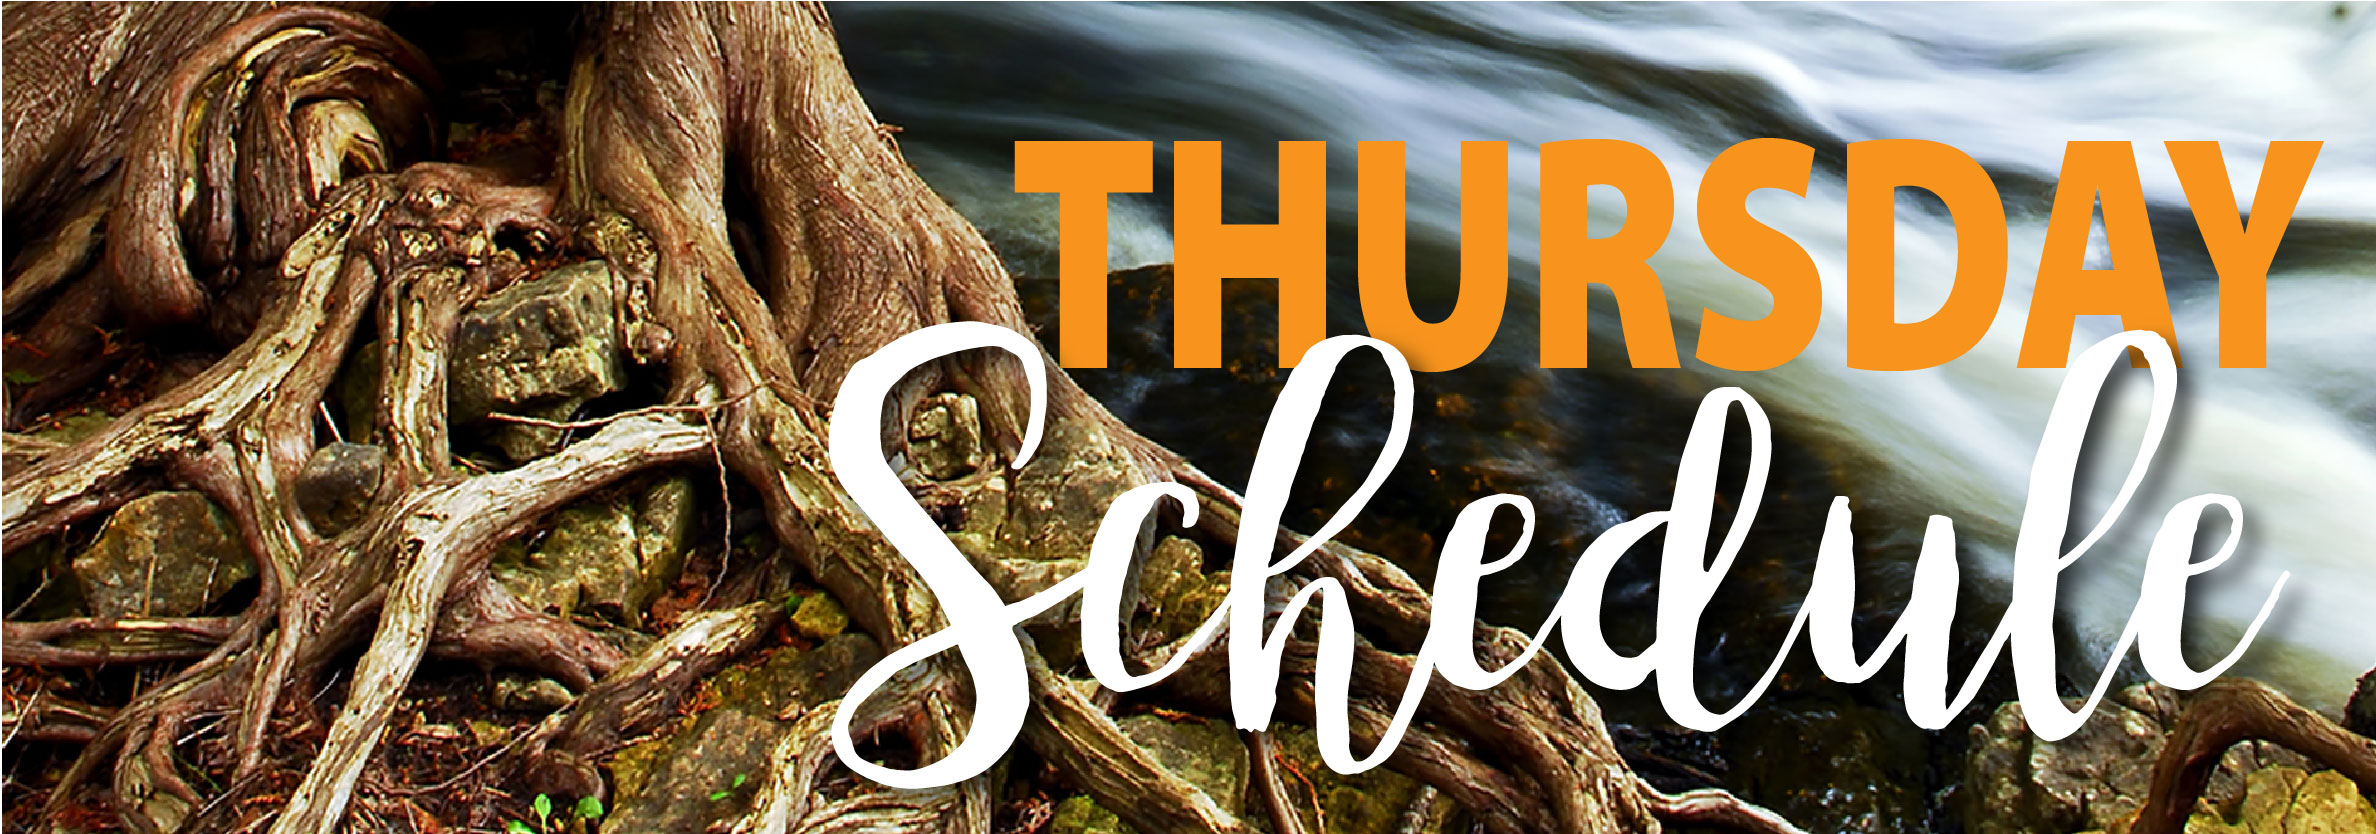 Homeschool Iowa Conference Thursday Schedule